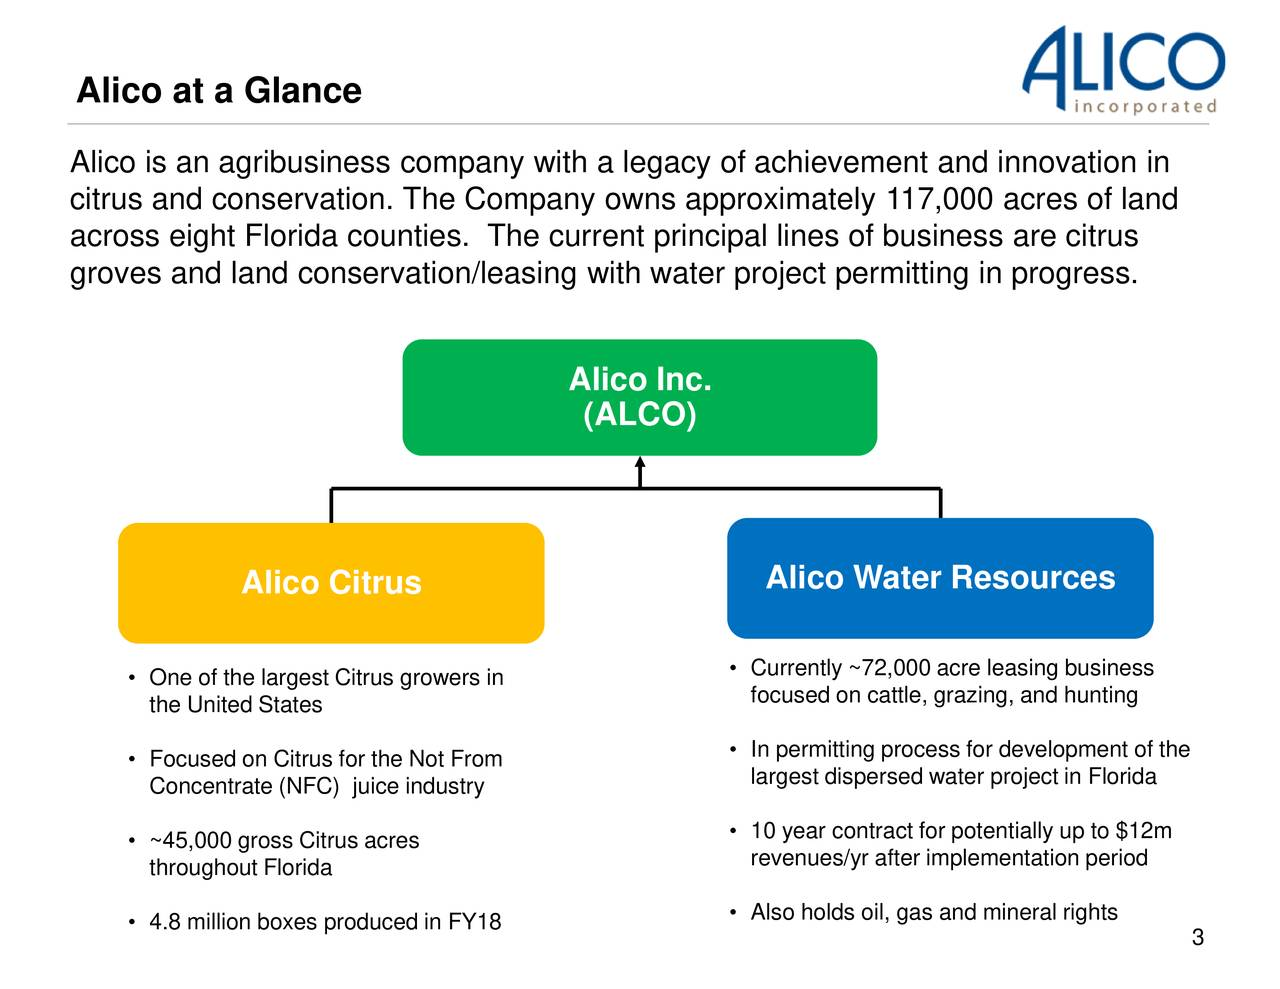 Alico is an agribusiness company with a legacy of achievement and innovation in citrus and conservation. The Company owns approximately 117,000 acres of land across eight Florida counties. The current principal lines of business are citrus groves and land conservation/leasing with water project permitting in progress. Alico Inc. (ALCO) Alico Citrus Alico Water Resources • One of the largest Citrus growers in • Currently ~72,000 acre leasing business the United States focused on cattle, grazing, and hunting • Focused on Citrus for the Not From • In permitting process for development of the Concentrate (NFC) juice industry largest dispersed water project in Florida • 10 year contract for potentially up to $12m • ~45,000 gross Citrus acres revenues/yr after implementation period throughout Florida • Also holds oil, gas and mineral rights • 4.8 million boxes produced in FY18 3